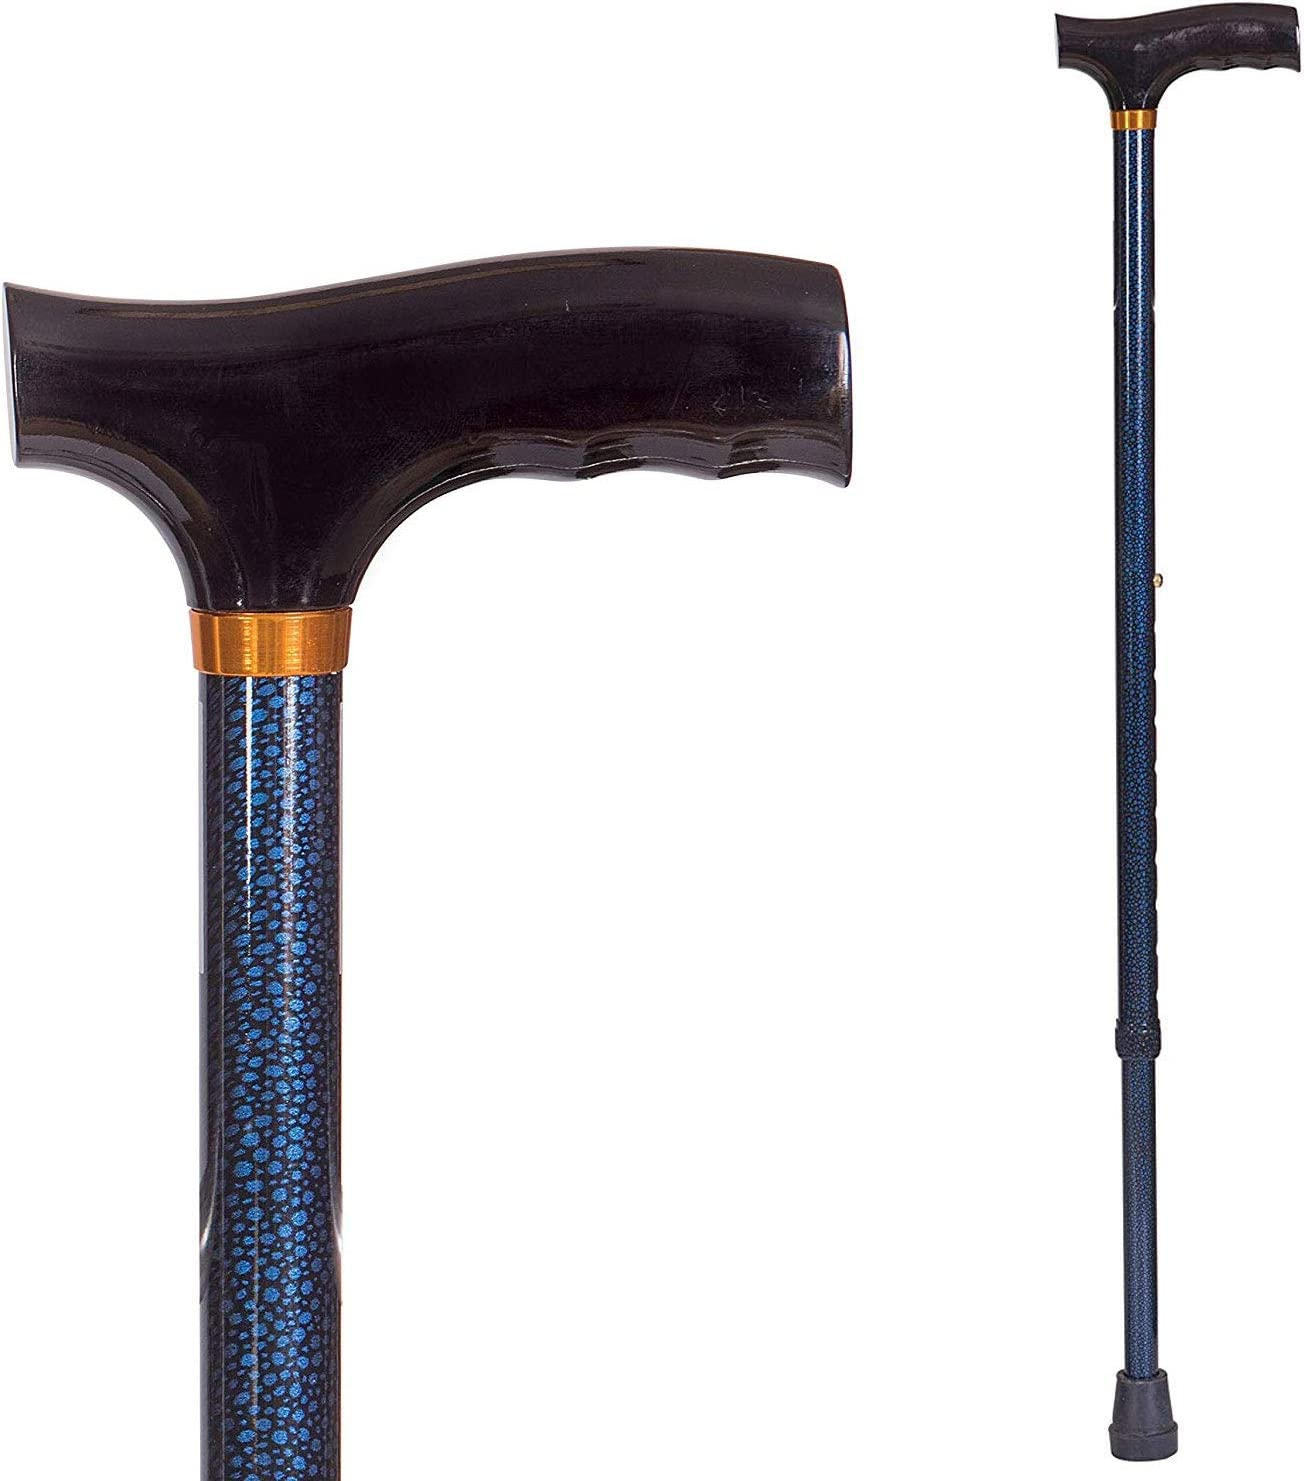 DMI Lightweight Aluminum Adjustable Walking Cane with Derby-Top Handle for Men and Women, Blue Ice: Health & Personal Care